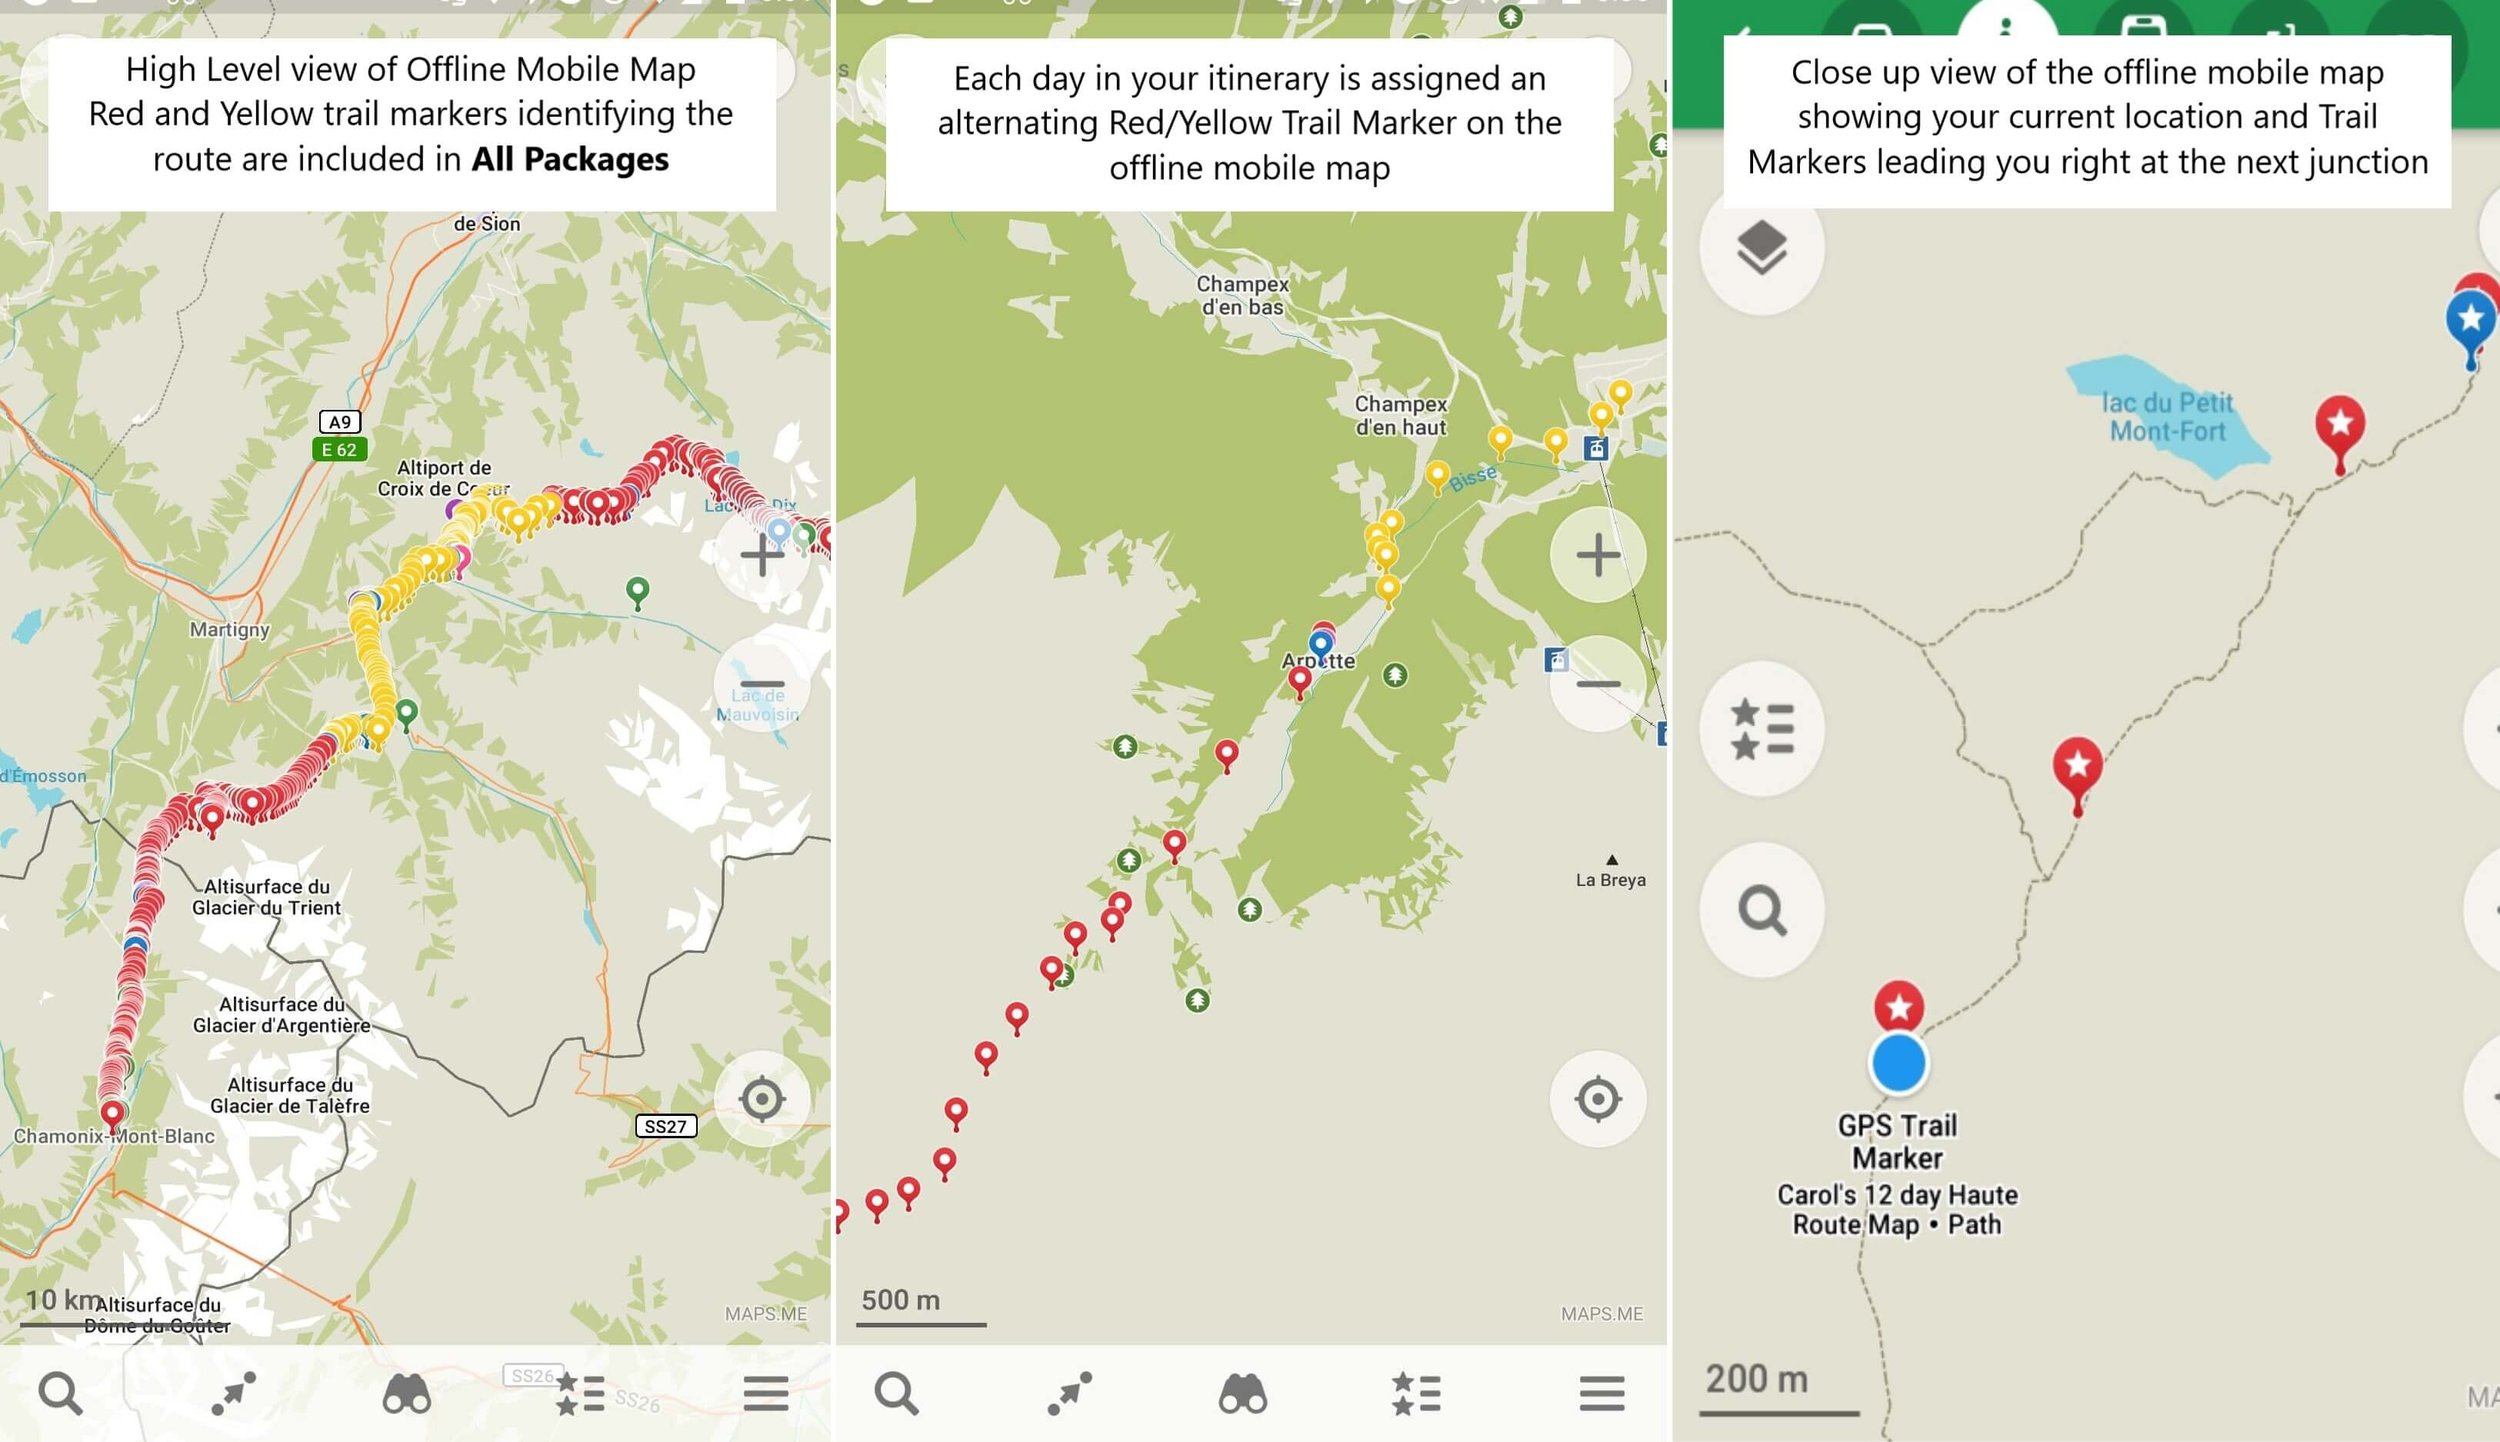 Walker's Haute Route Map for mobile phone